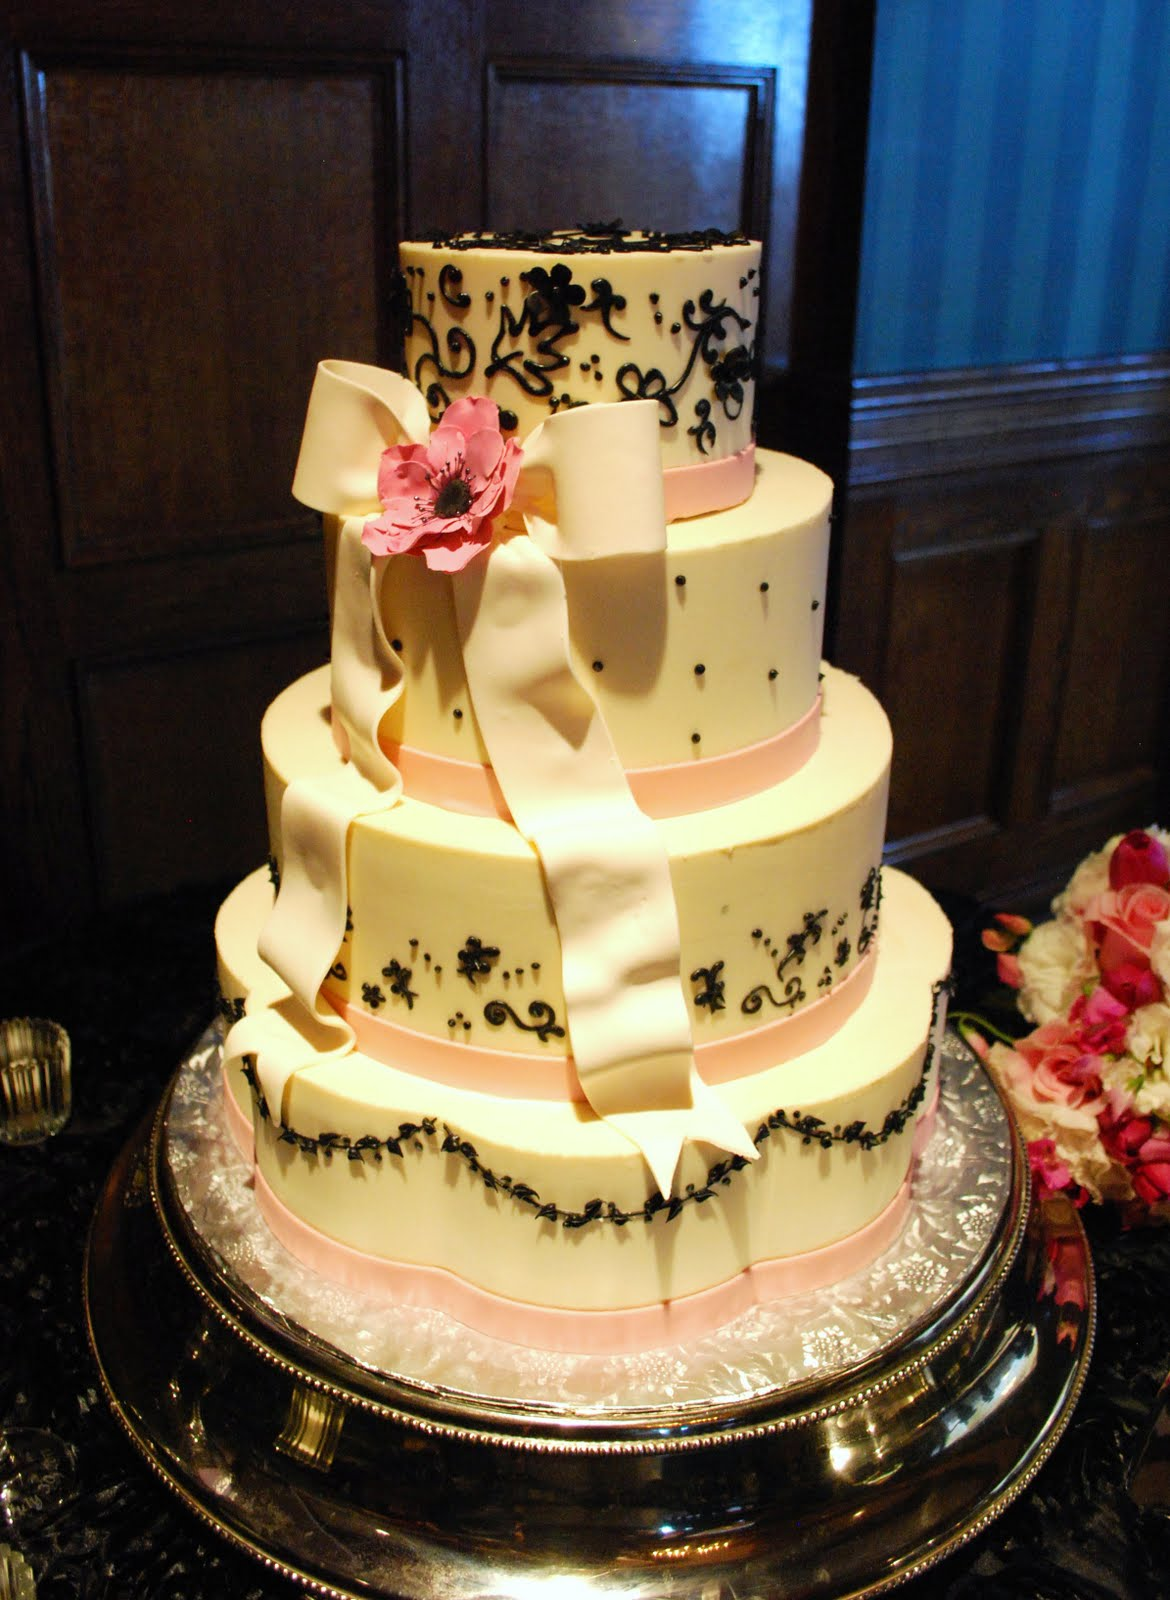 The Beehive: Pink and Black Wedding Cake